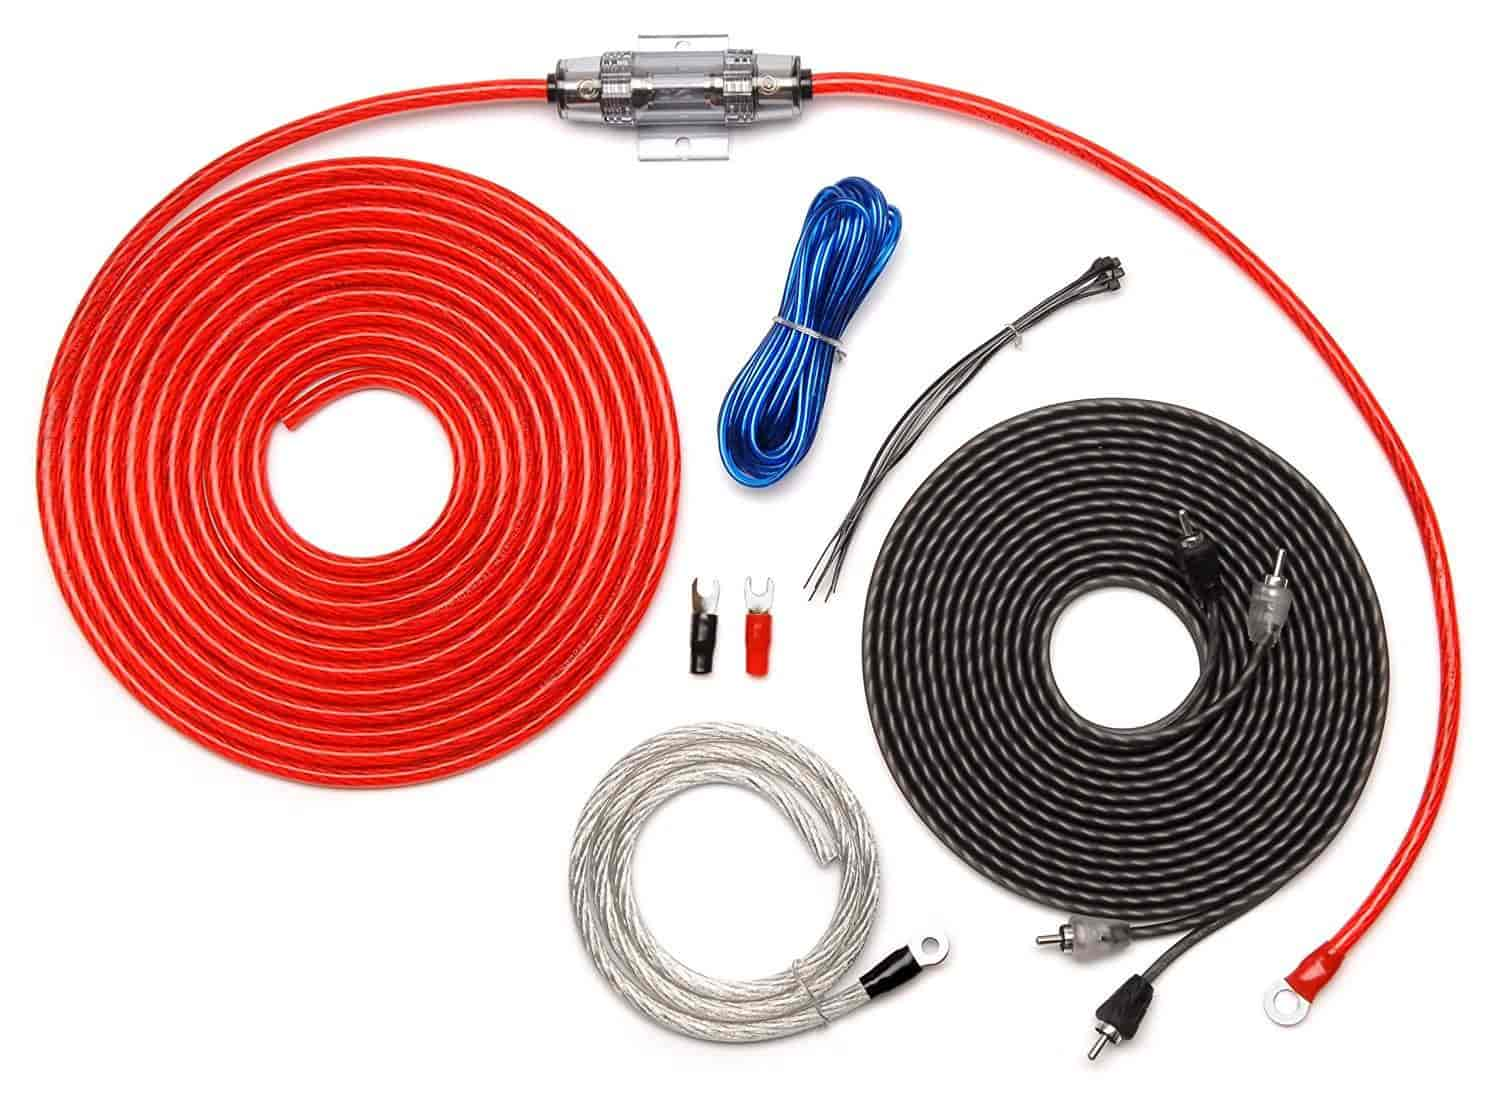 Buy Carwires Aik Ps8000 500 Watt 8 Awg Car Amplifier Install Kit How To A Amp